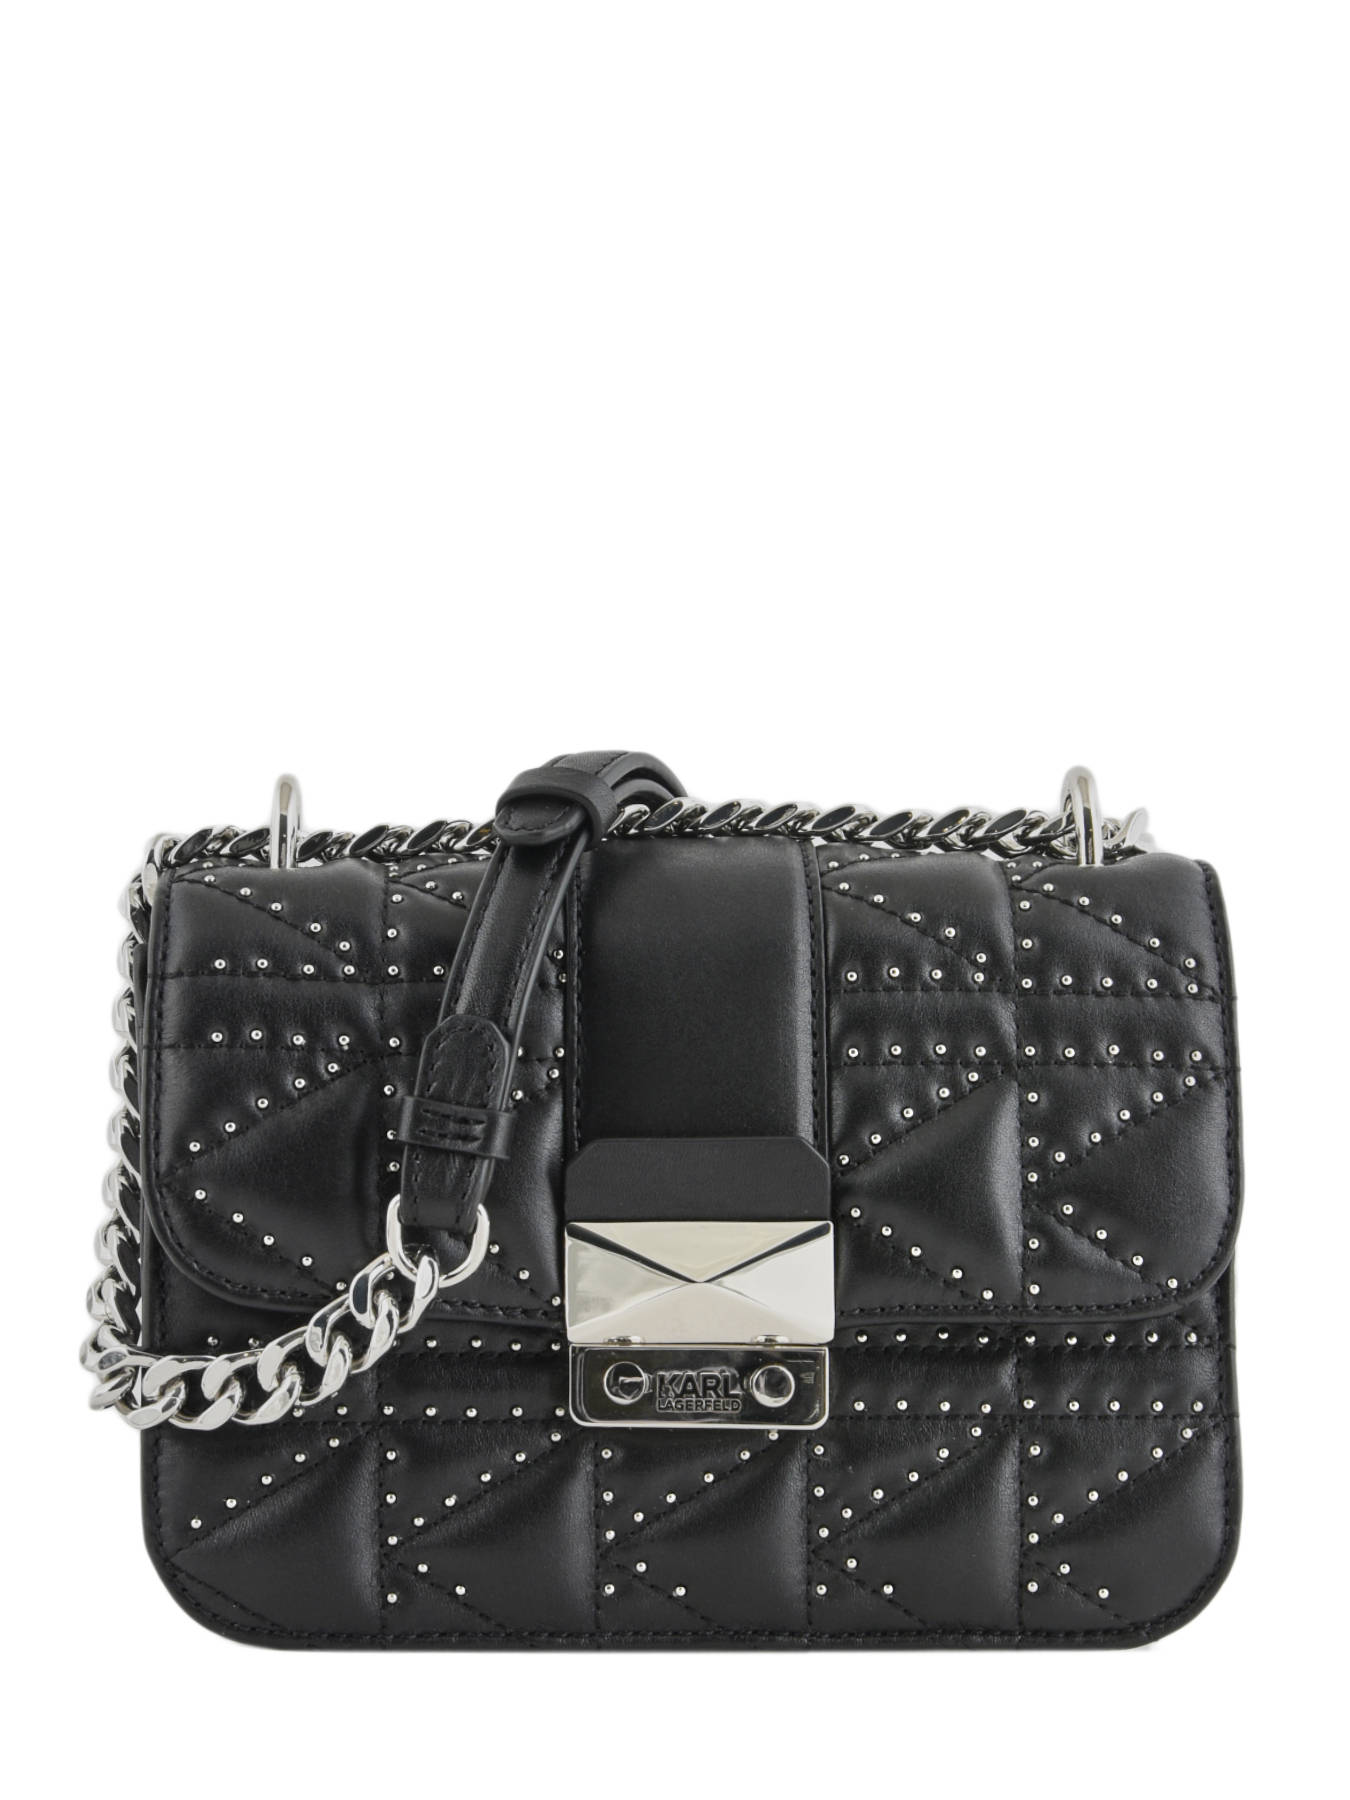 ba503ff47da4 ... Shoulder Bag Kuilted Studs Leather Karl lagerfeld Black kuilted studs  91KW3048 ...